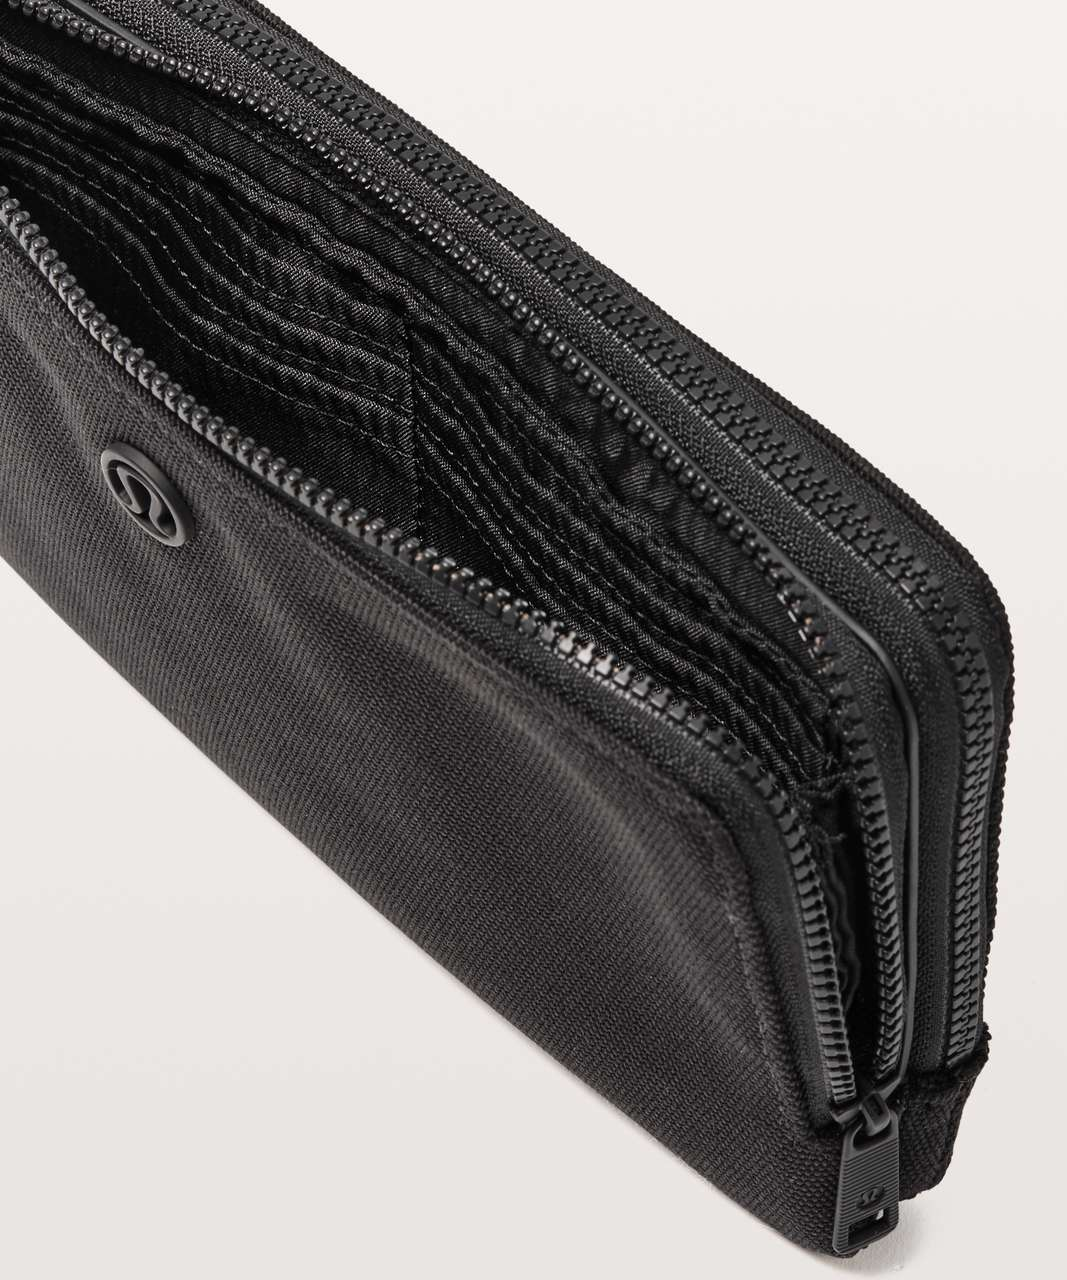 Lululemon Double Up Pouch - Black (Third Release)